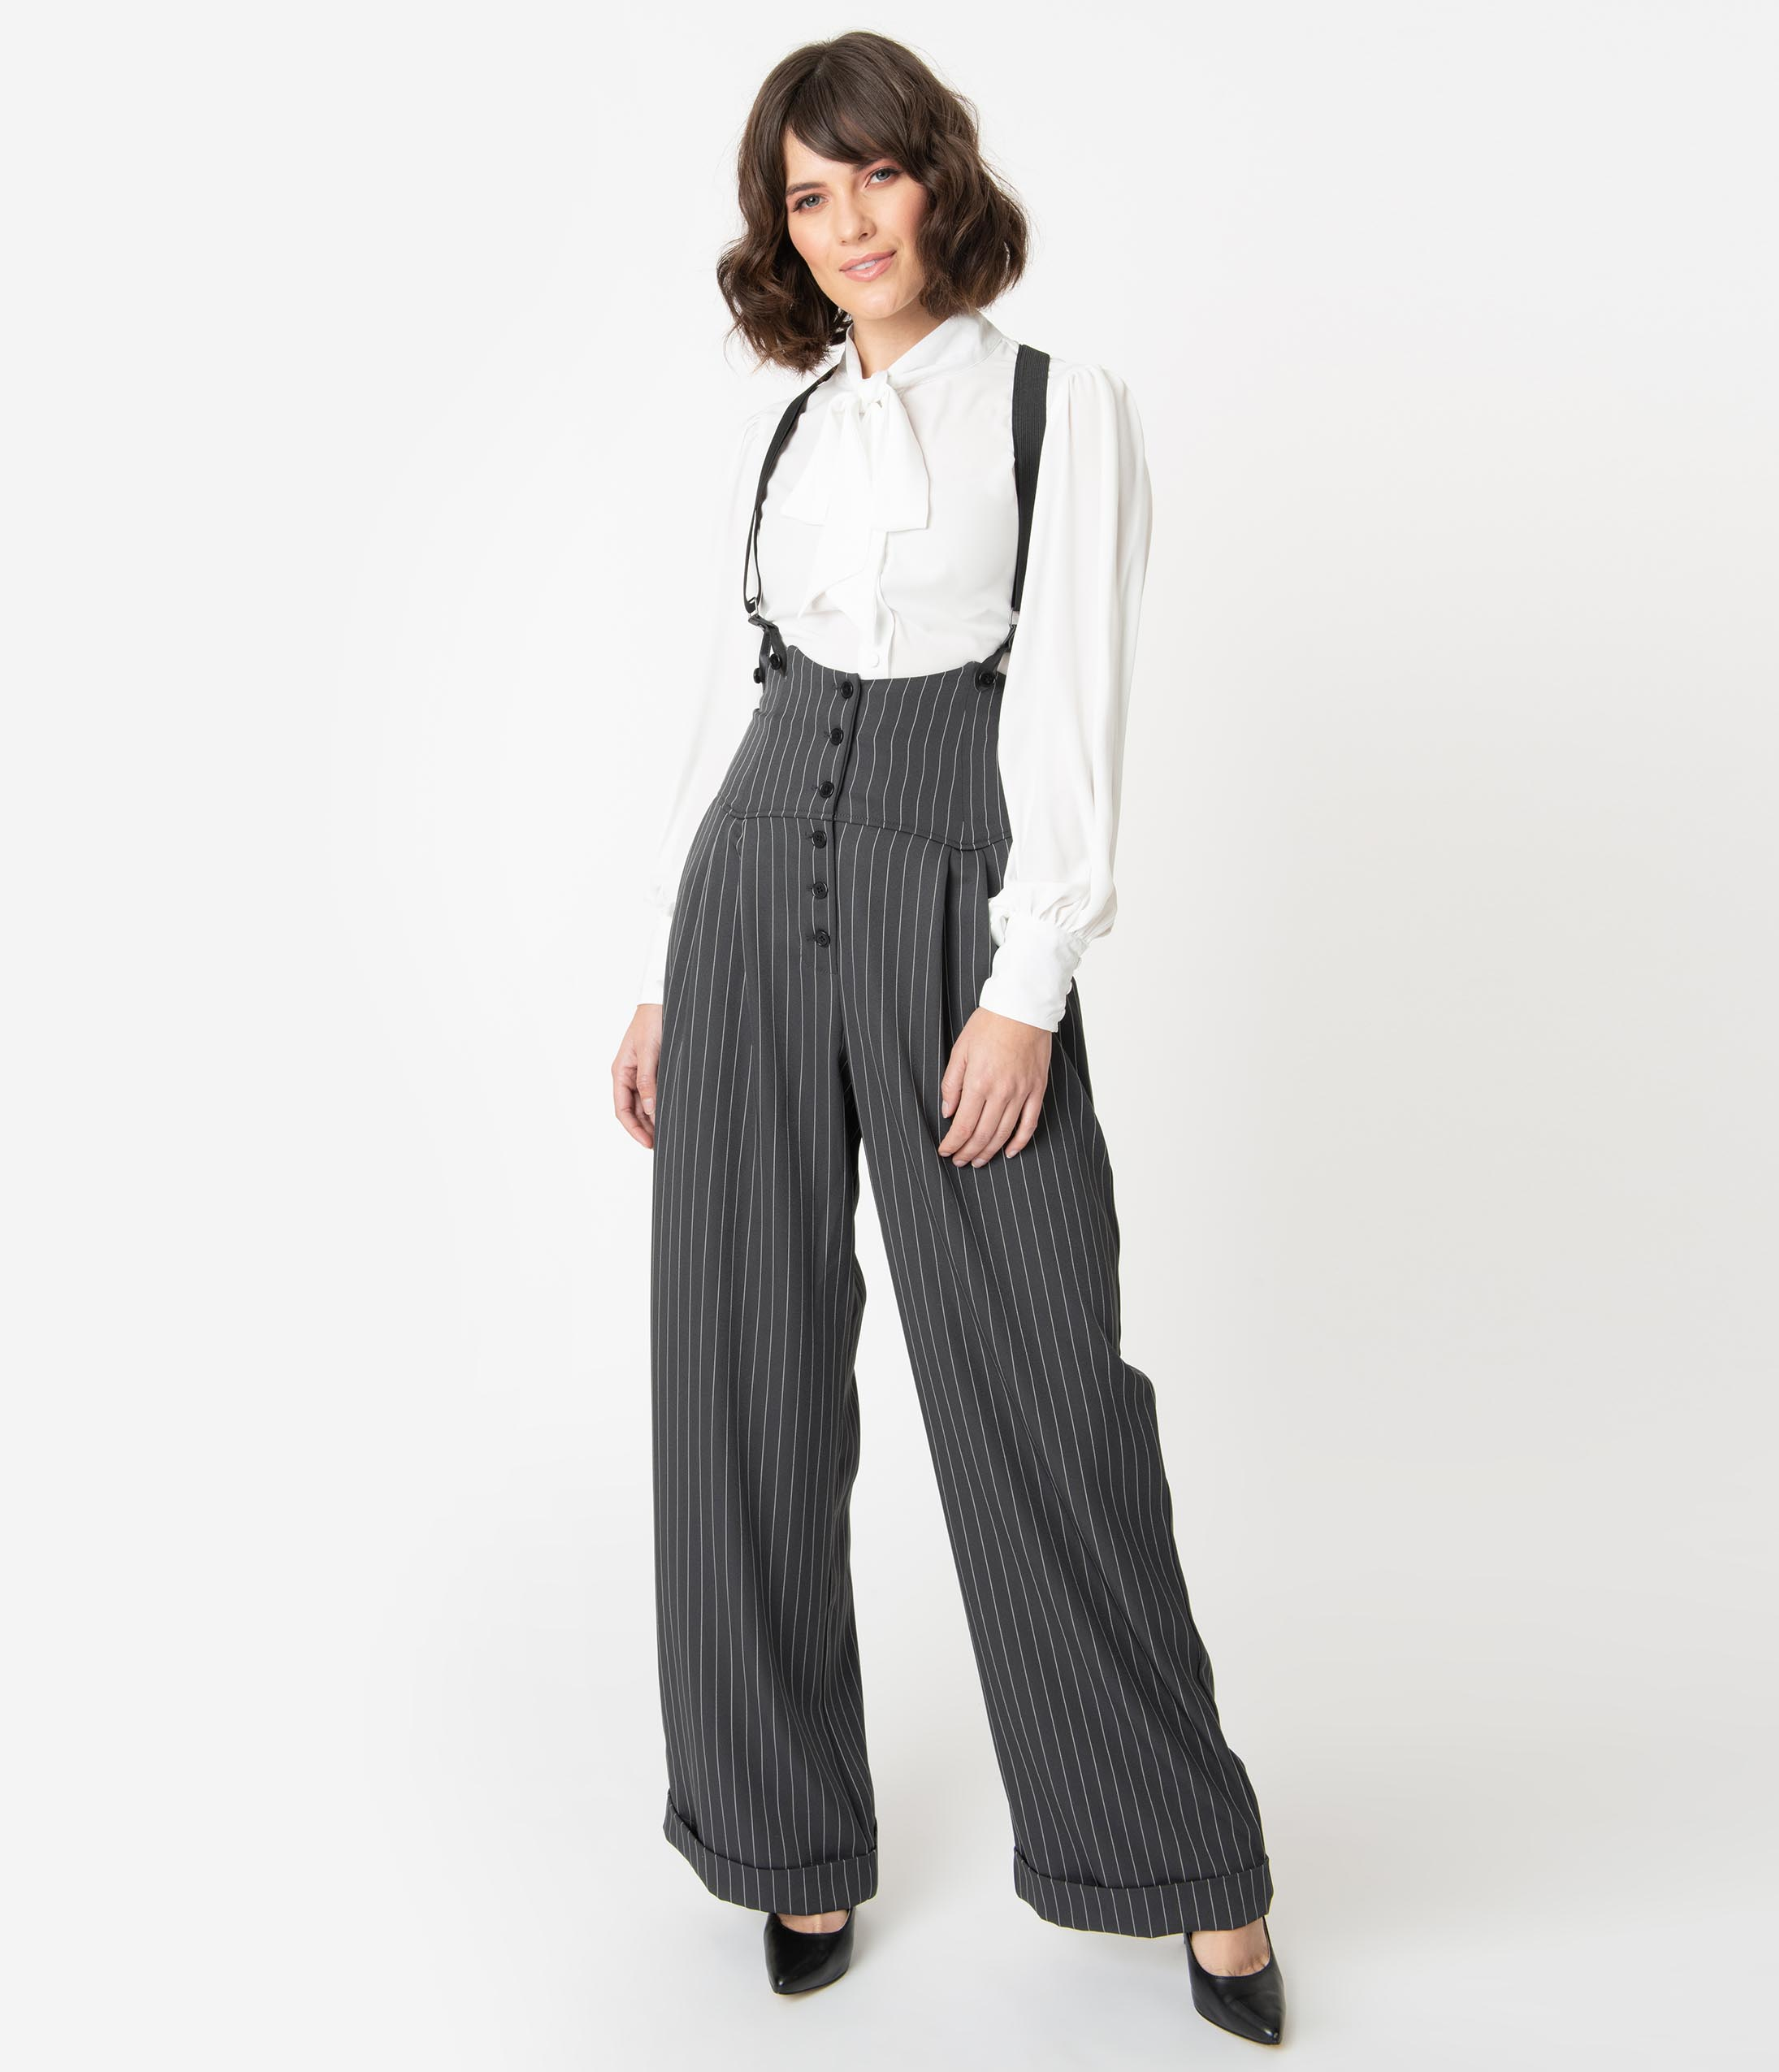 Vintage Overalls 1910s -1950s History & Shop Overalls Unique Vintage 1930S Charcoal Grey Pinstripe Thelma Suspender Pants $78.00 AT vintagedancer.com